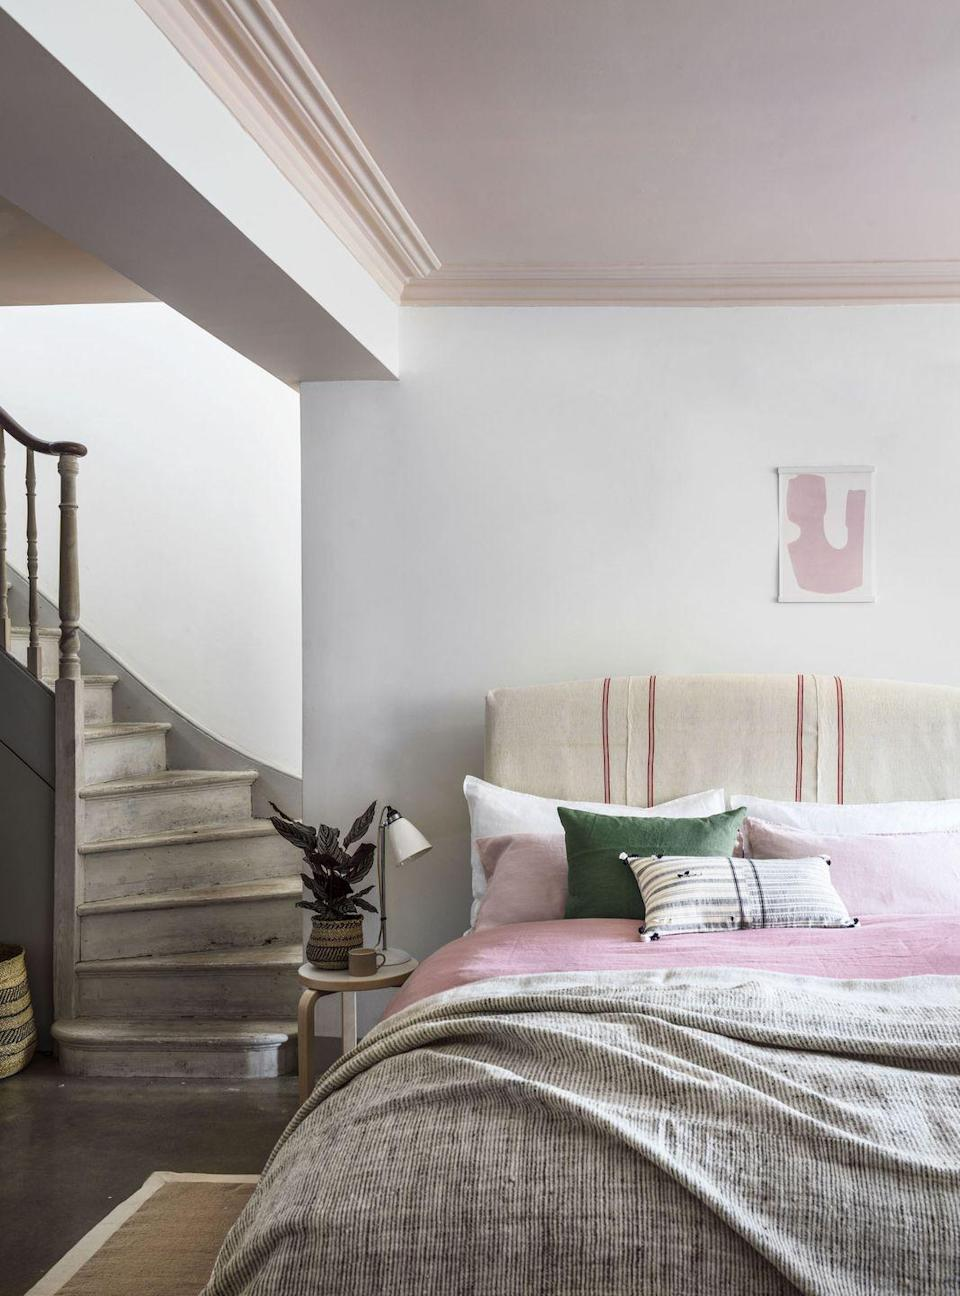 <p>A white, pink and grey bedroom colour scheme can work wonders too. Here the ceiling, which has been painted pale pink, really helps to zone this sleeping space. The bedlinen, layered with a slightly punchier pink shade and grey marl sheets, along with the green cushion and the play on textures and patterns, creates a wonderfully calm and relaxing bedroom.</p>